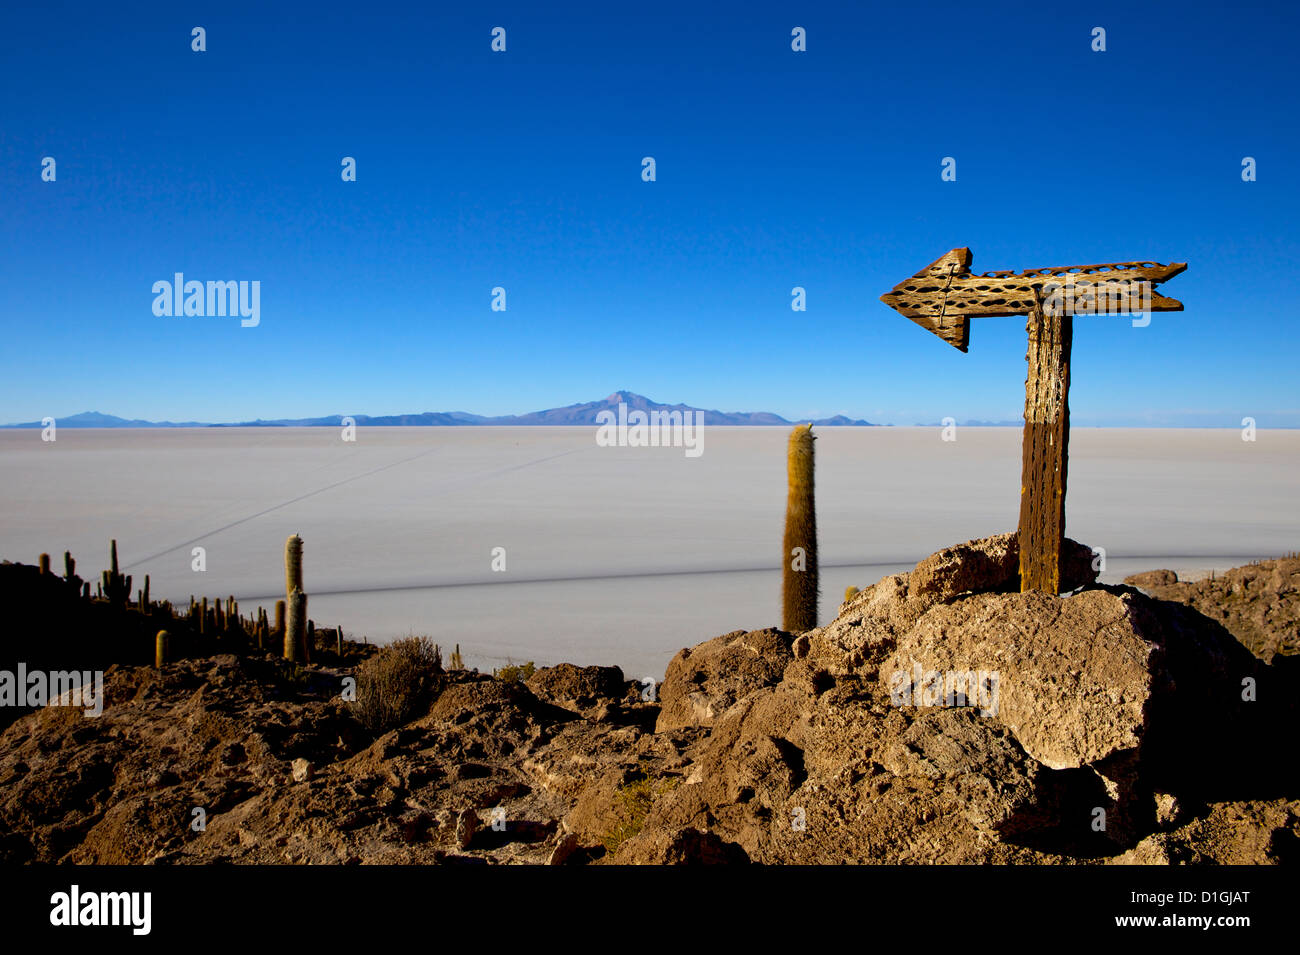 Cactus arrow on Isla de los Pescadores, Volcan Tunupa and the salt flats, Salar de Uyuni, Southwest Highlands, Bolivia - Stock Image